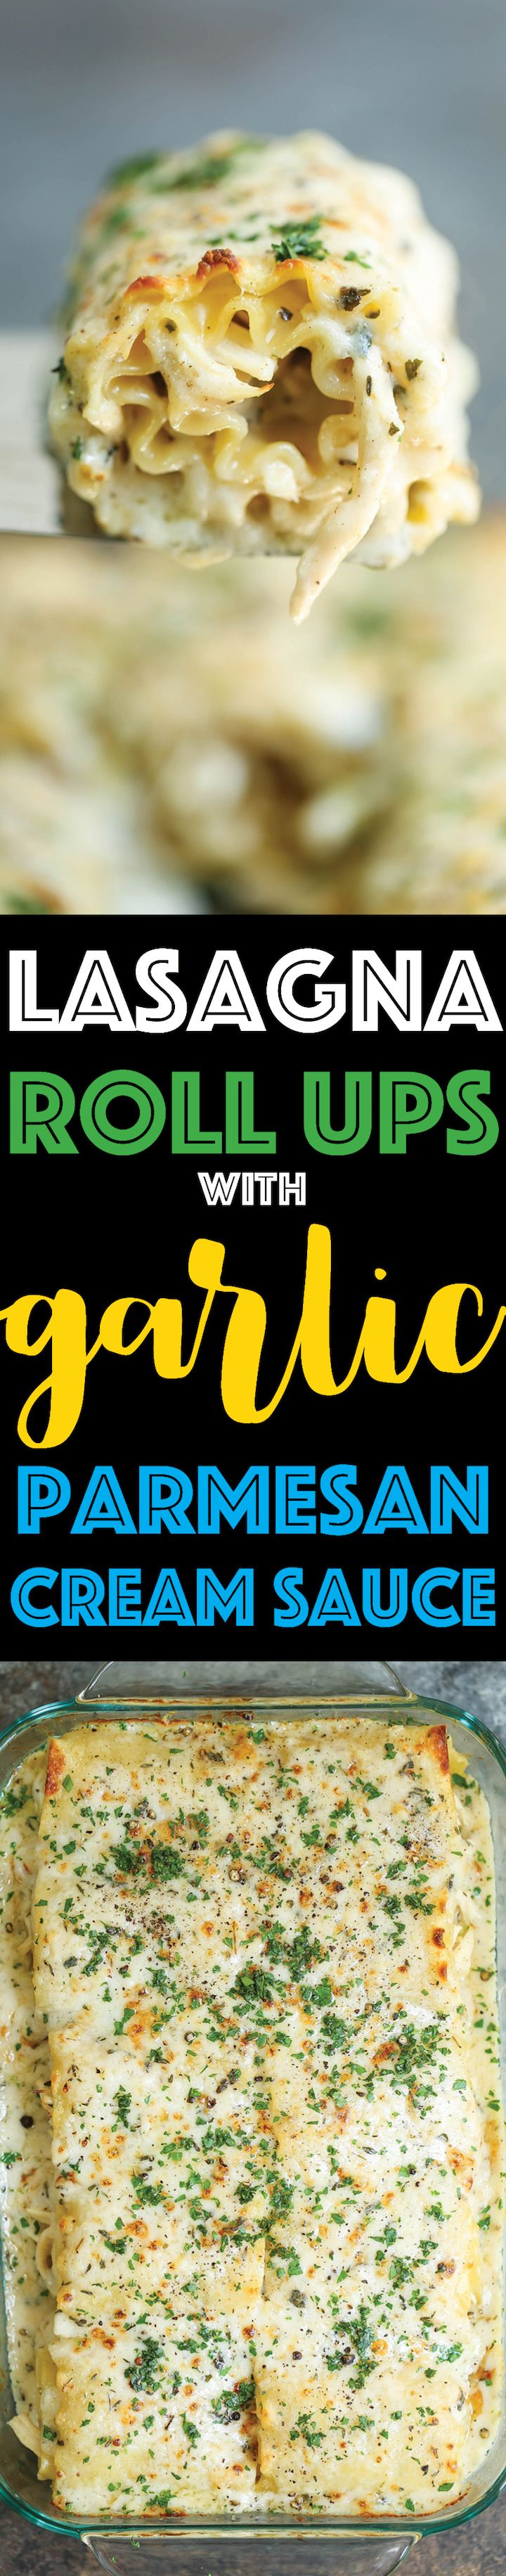 Lasagna Rolls Up with Garlic Parmesan Cream Sauce - Freezer-friendly make-ahead lasagna roll ups with the creamiest and most epic garlic cream sauce!!!